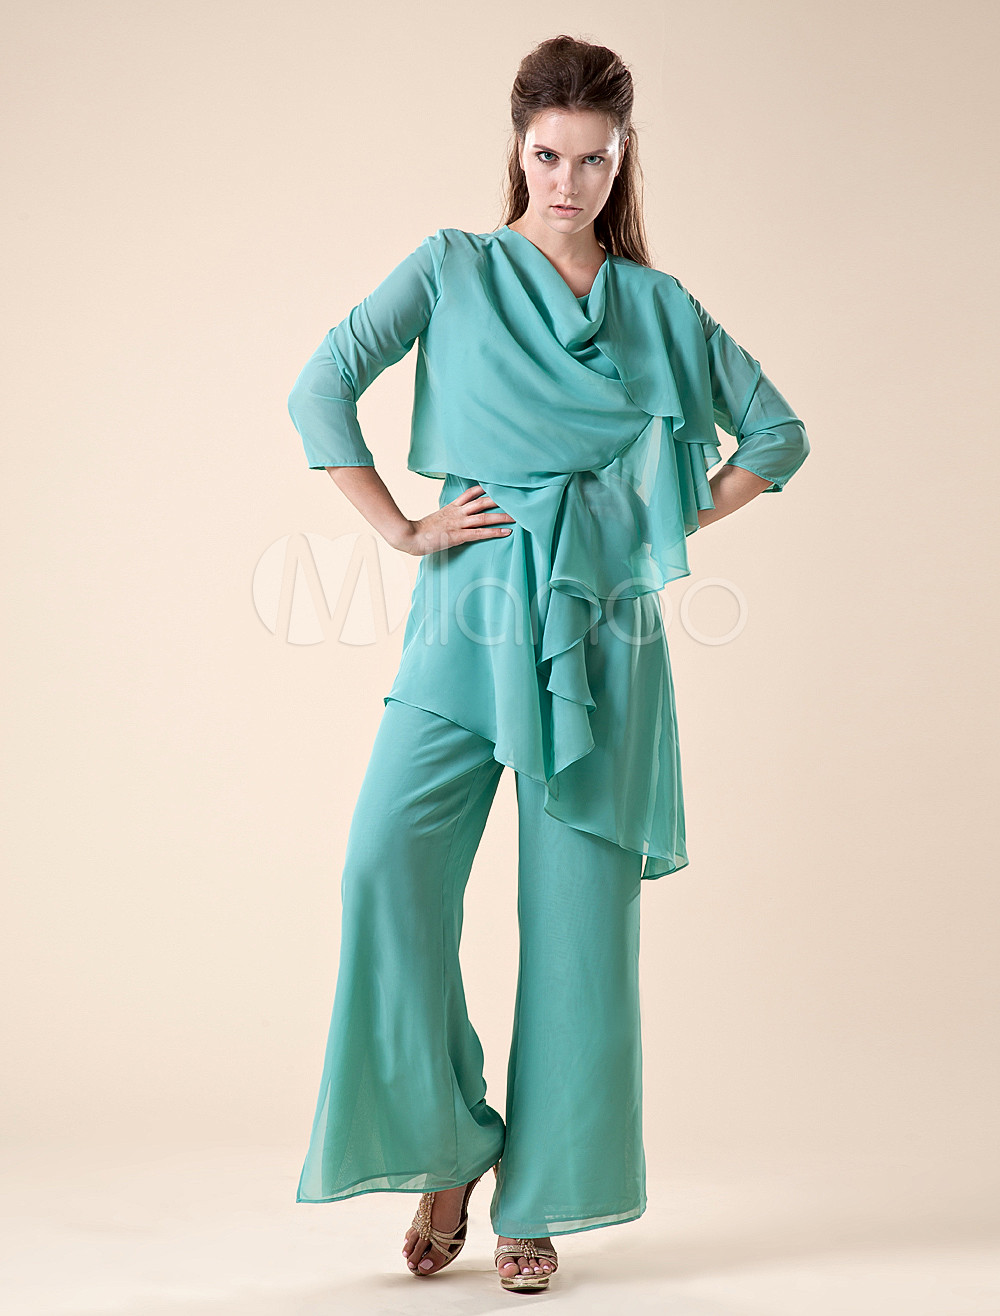 Mother Of The Bride Pant Suits Turquoise Chiffon Party Outfit Set In ...